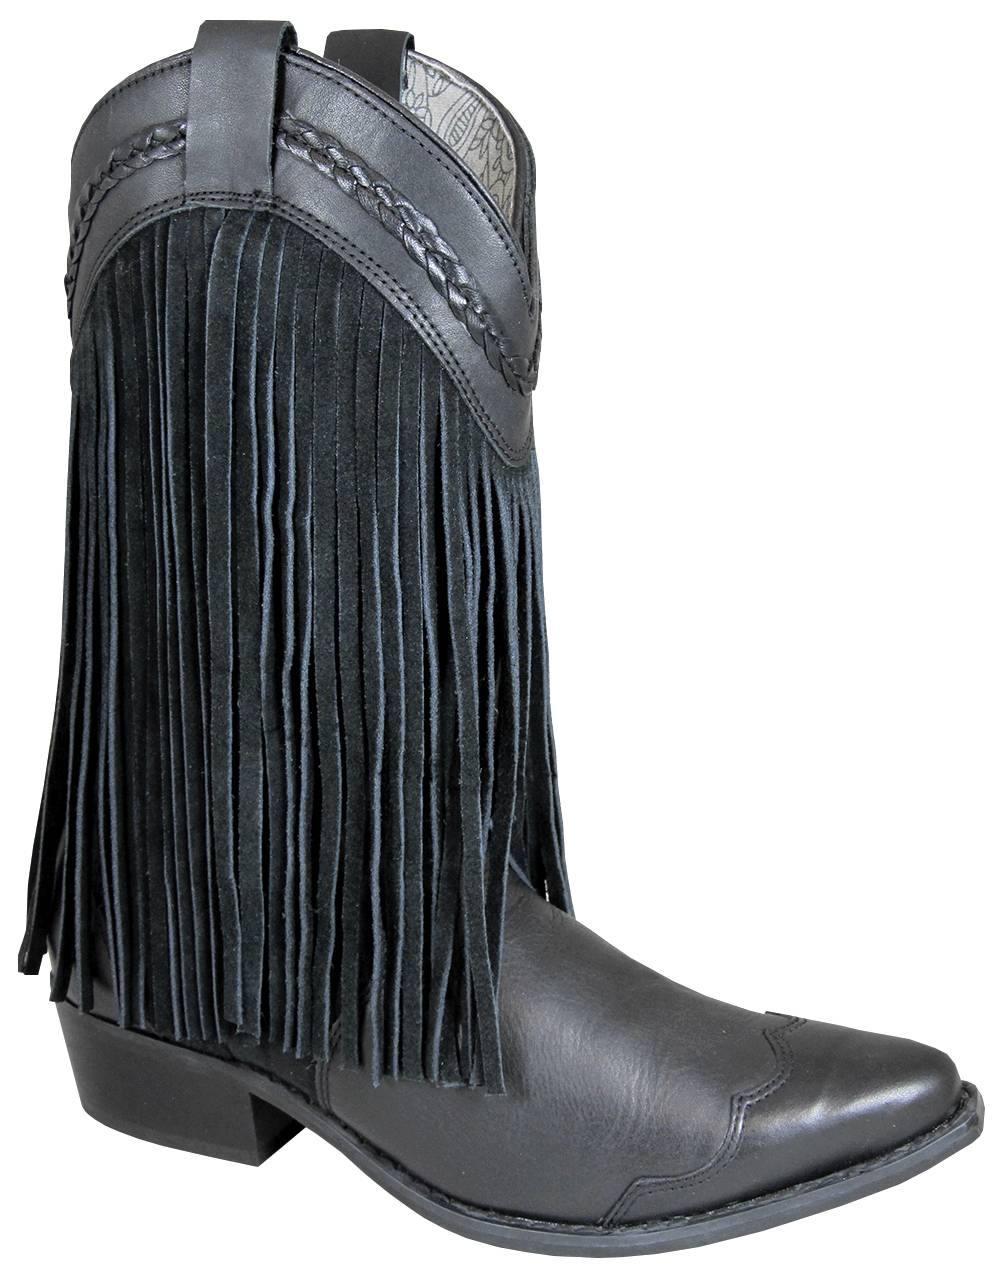 Smoky Mountain Womens Rosie Leather Suede Fringe Boots - Black